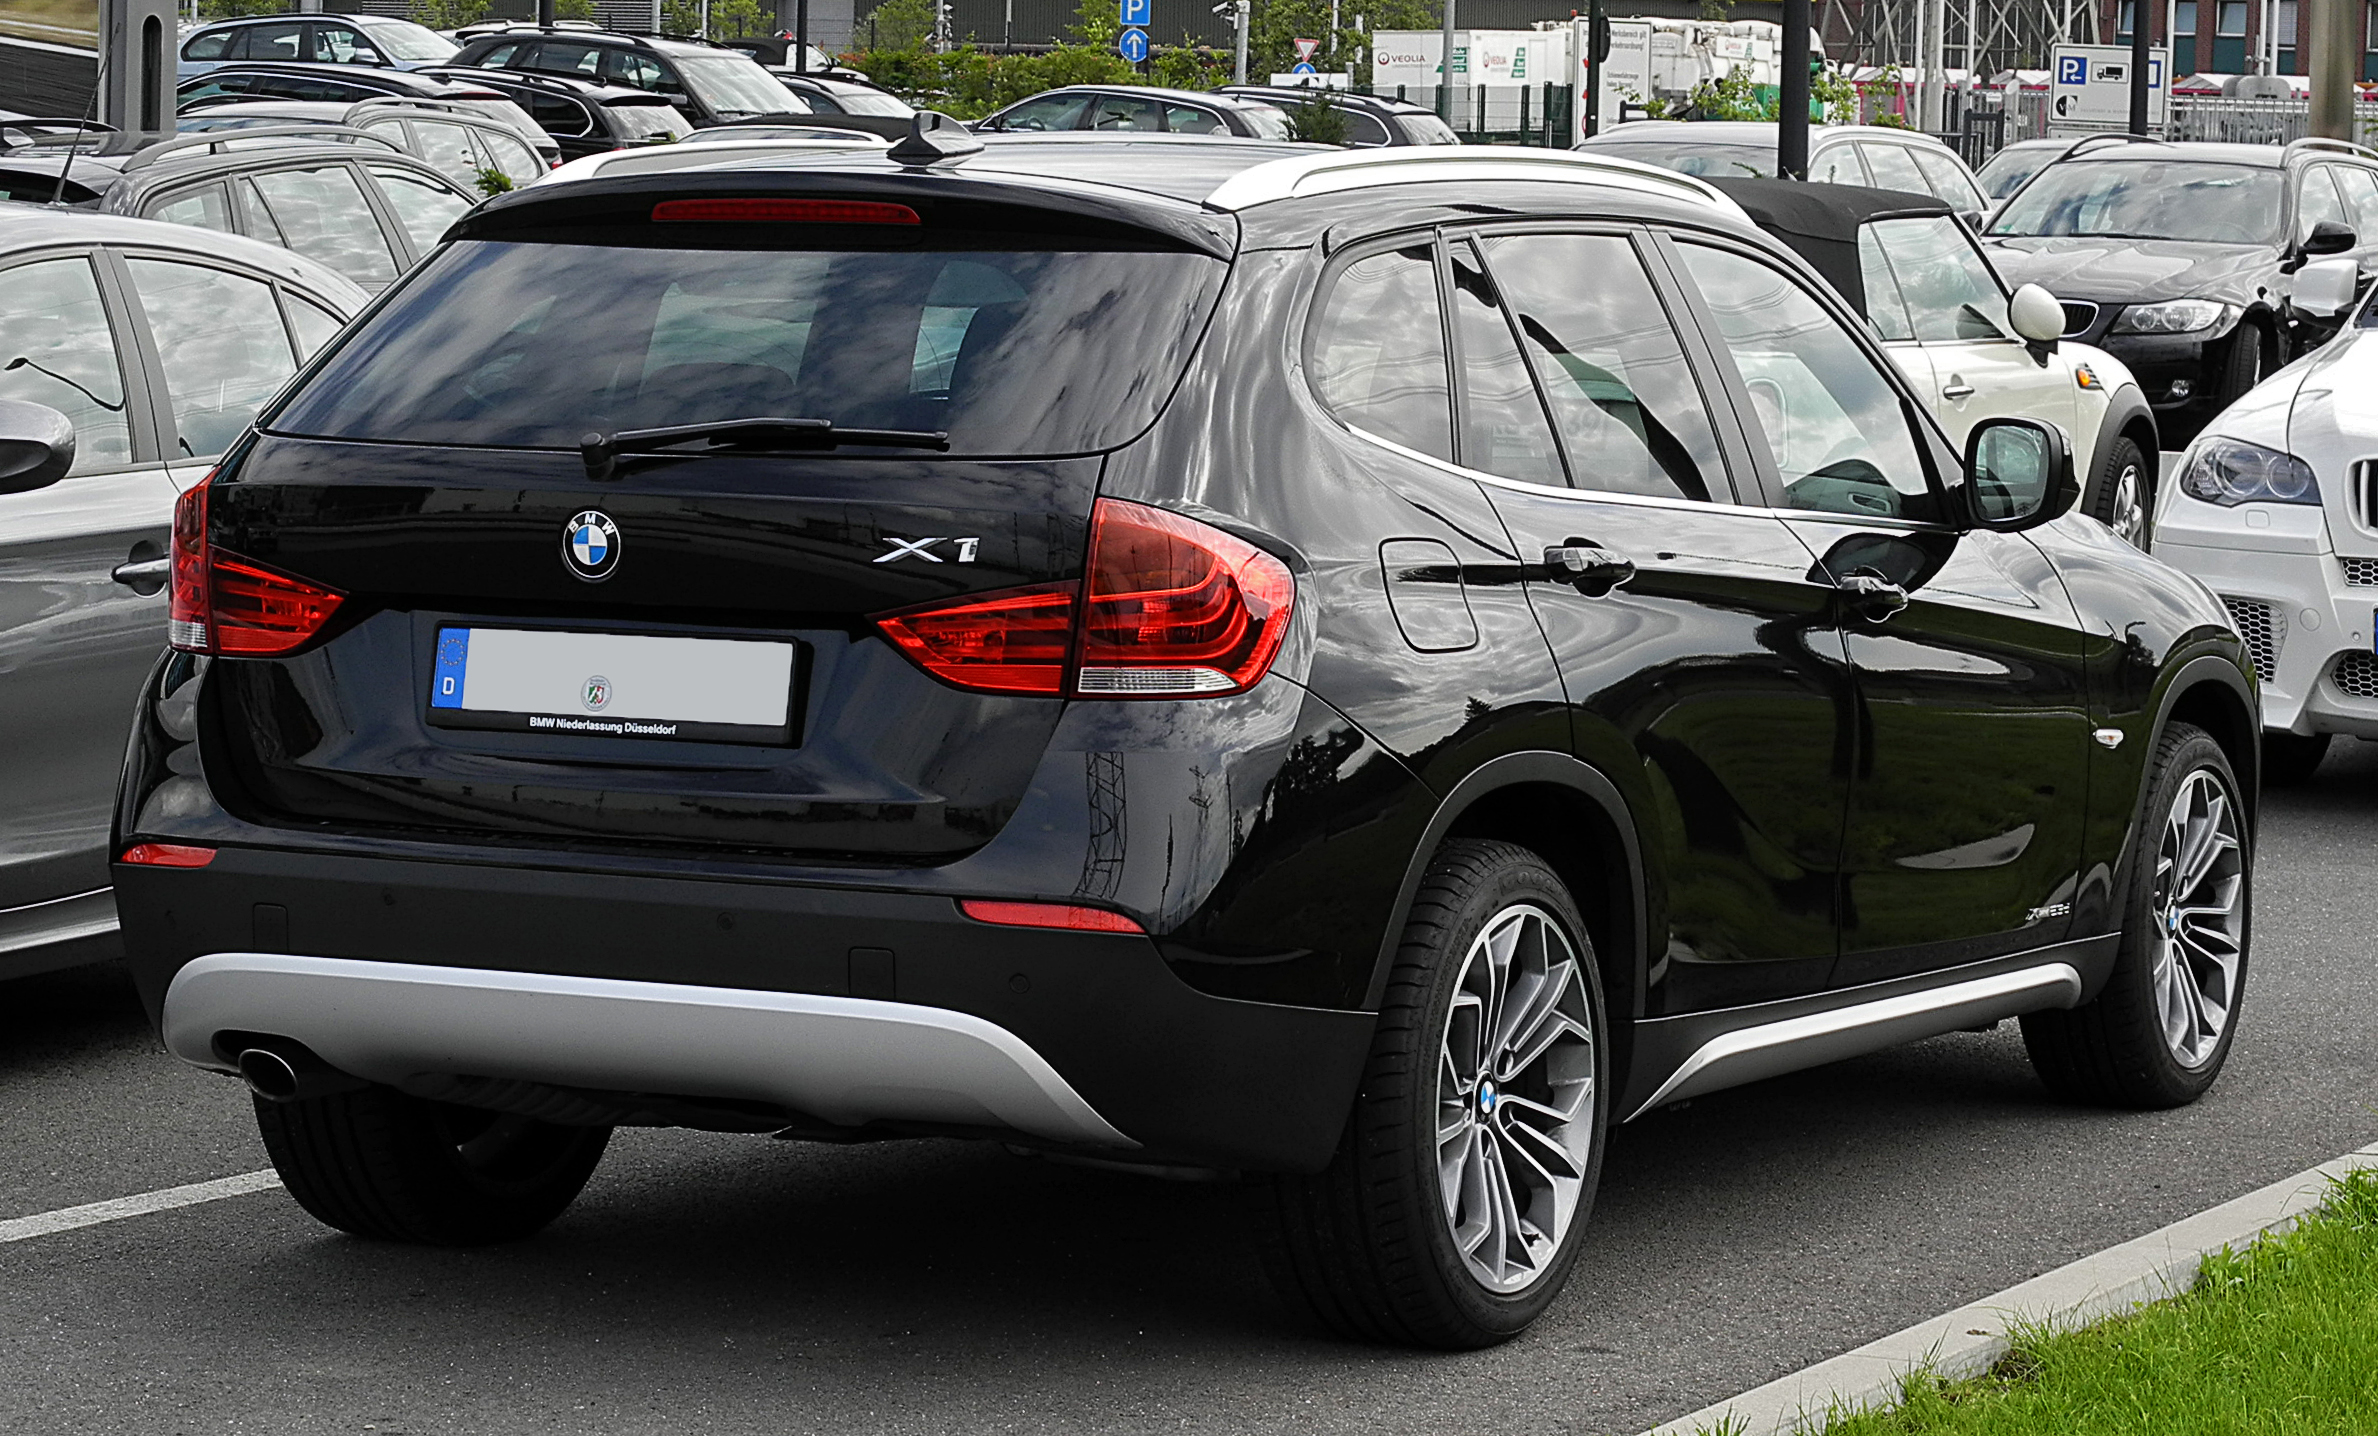 file bmw x1 xdrive23d e84 heckansicht 2 juli 2011 d wikimedia commons. Black Bedroom Furniture Sets. Home Design Ideas